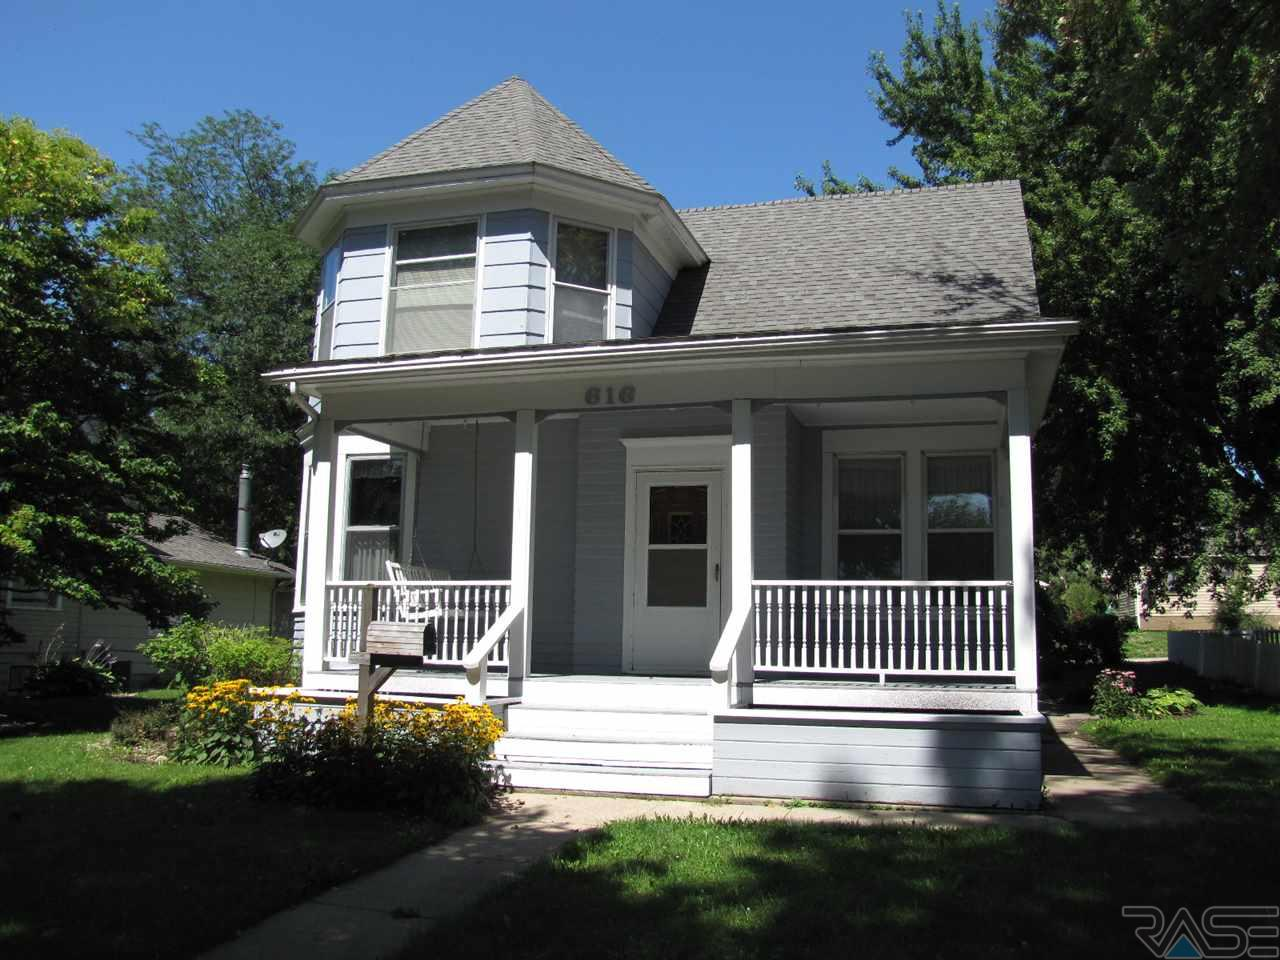 616 W Main St, Luverne, MN 56156